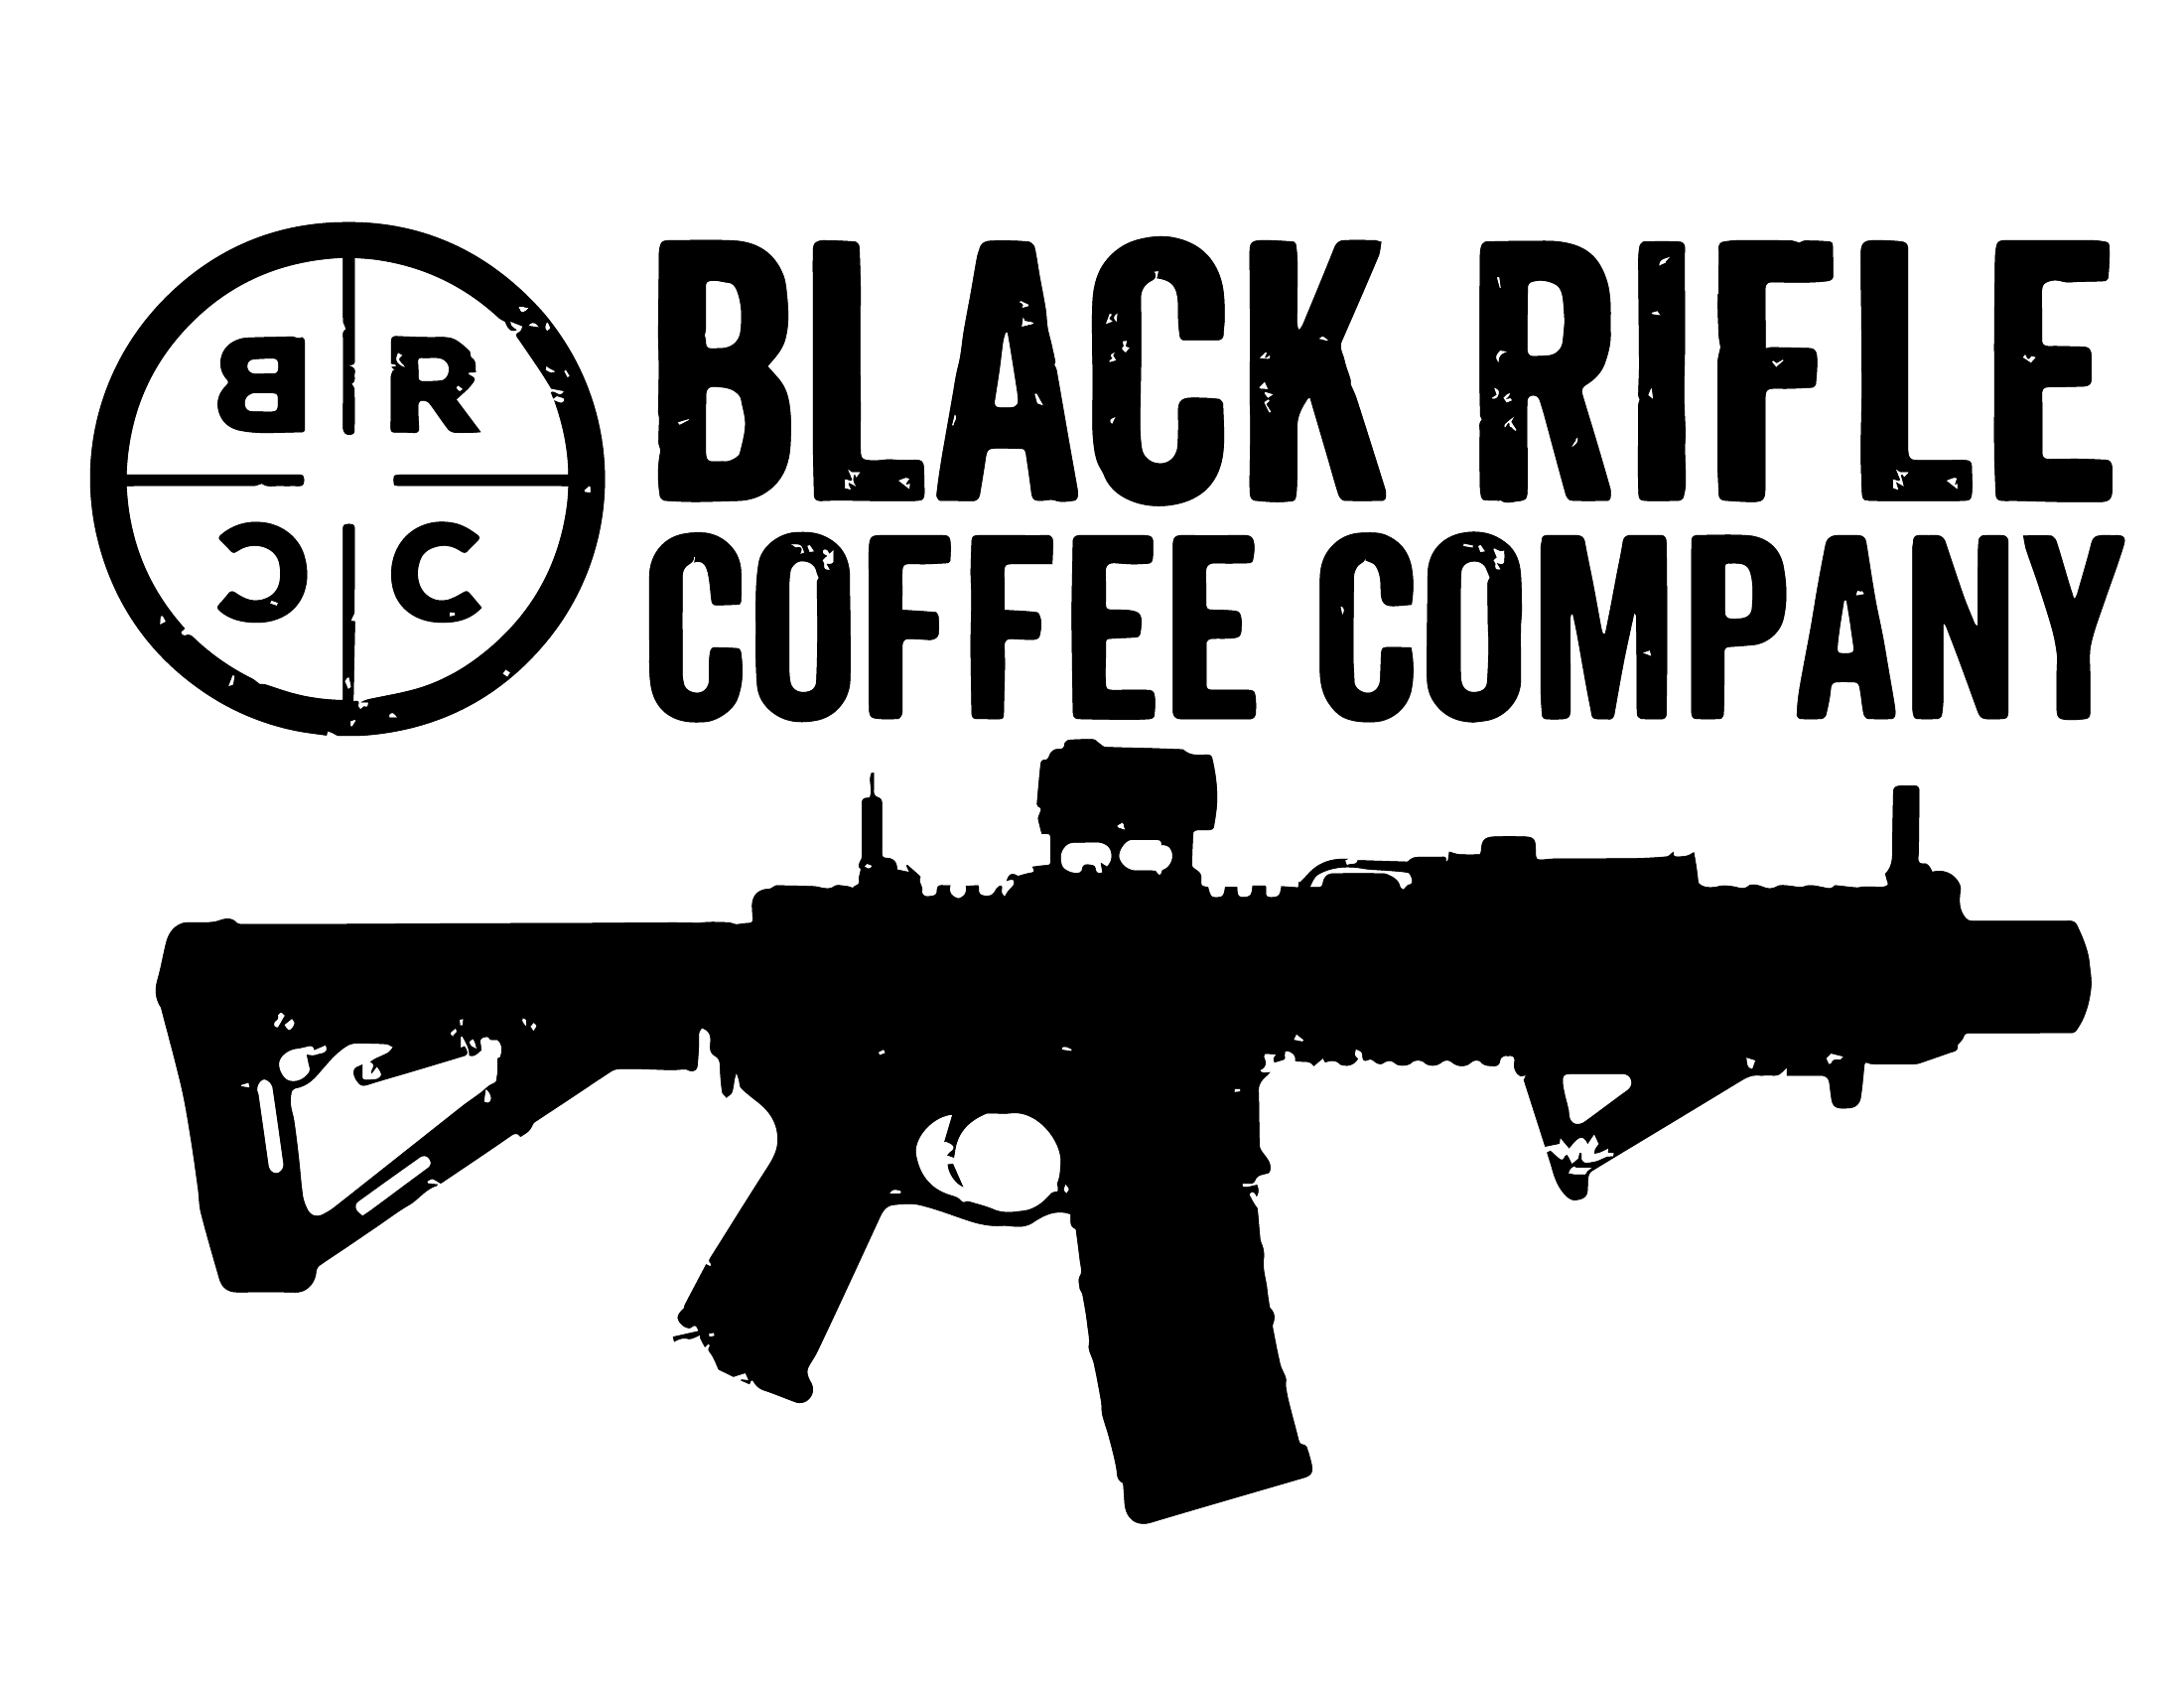 BRCC-LOGO-WITH-RIFLE-BLACK-TRANSPARENT.png